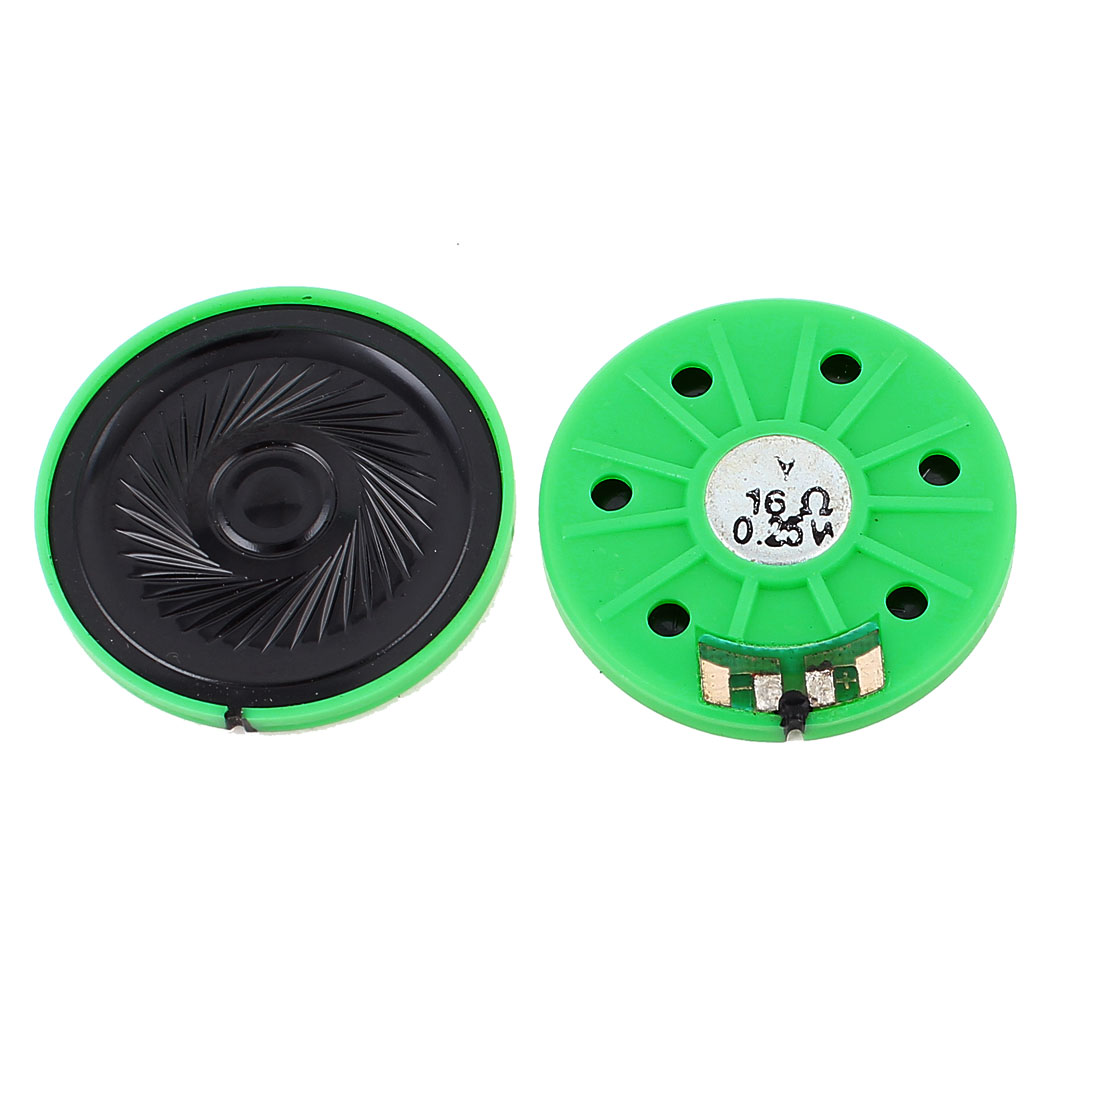 2 Pcs 0.25W 16 Ohm 40mm Round Inside Magnet Electronic Speaker Loudspeaker